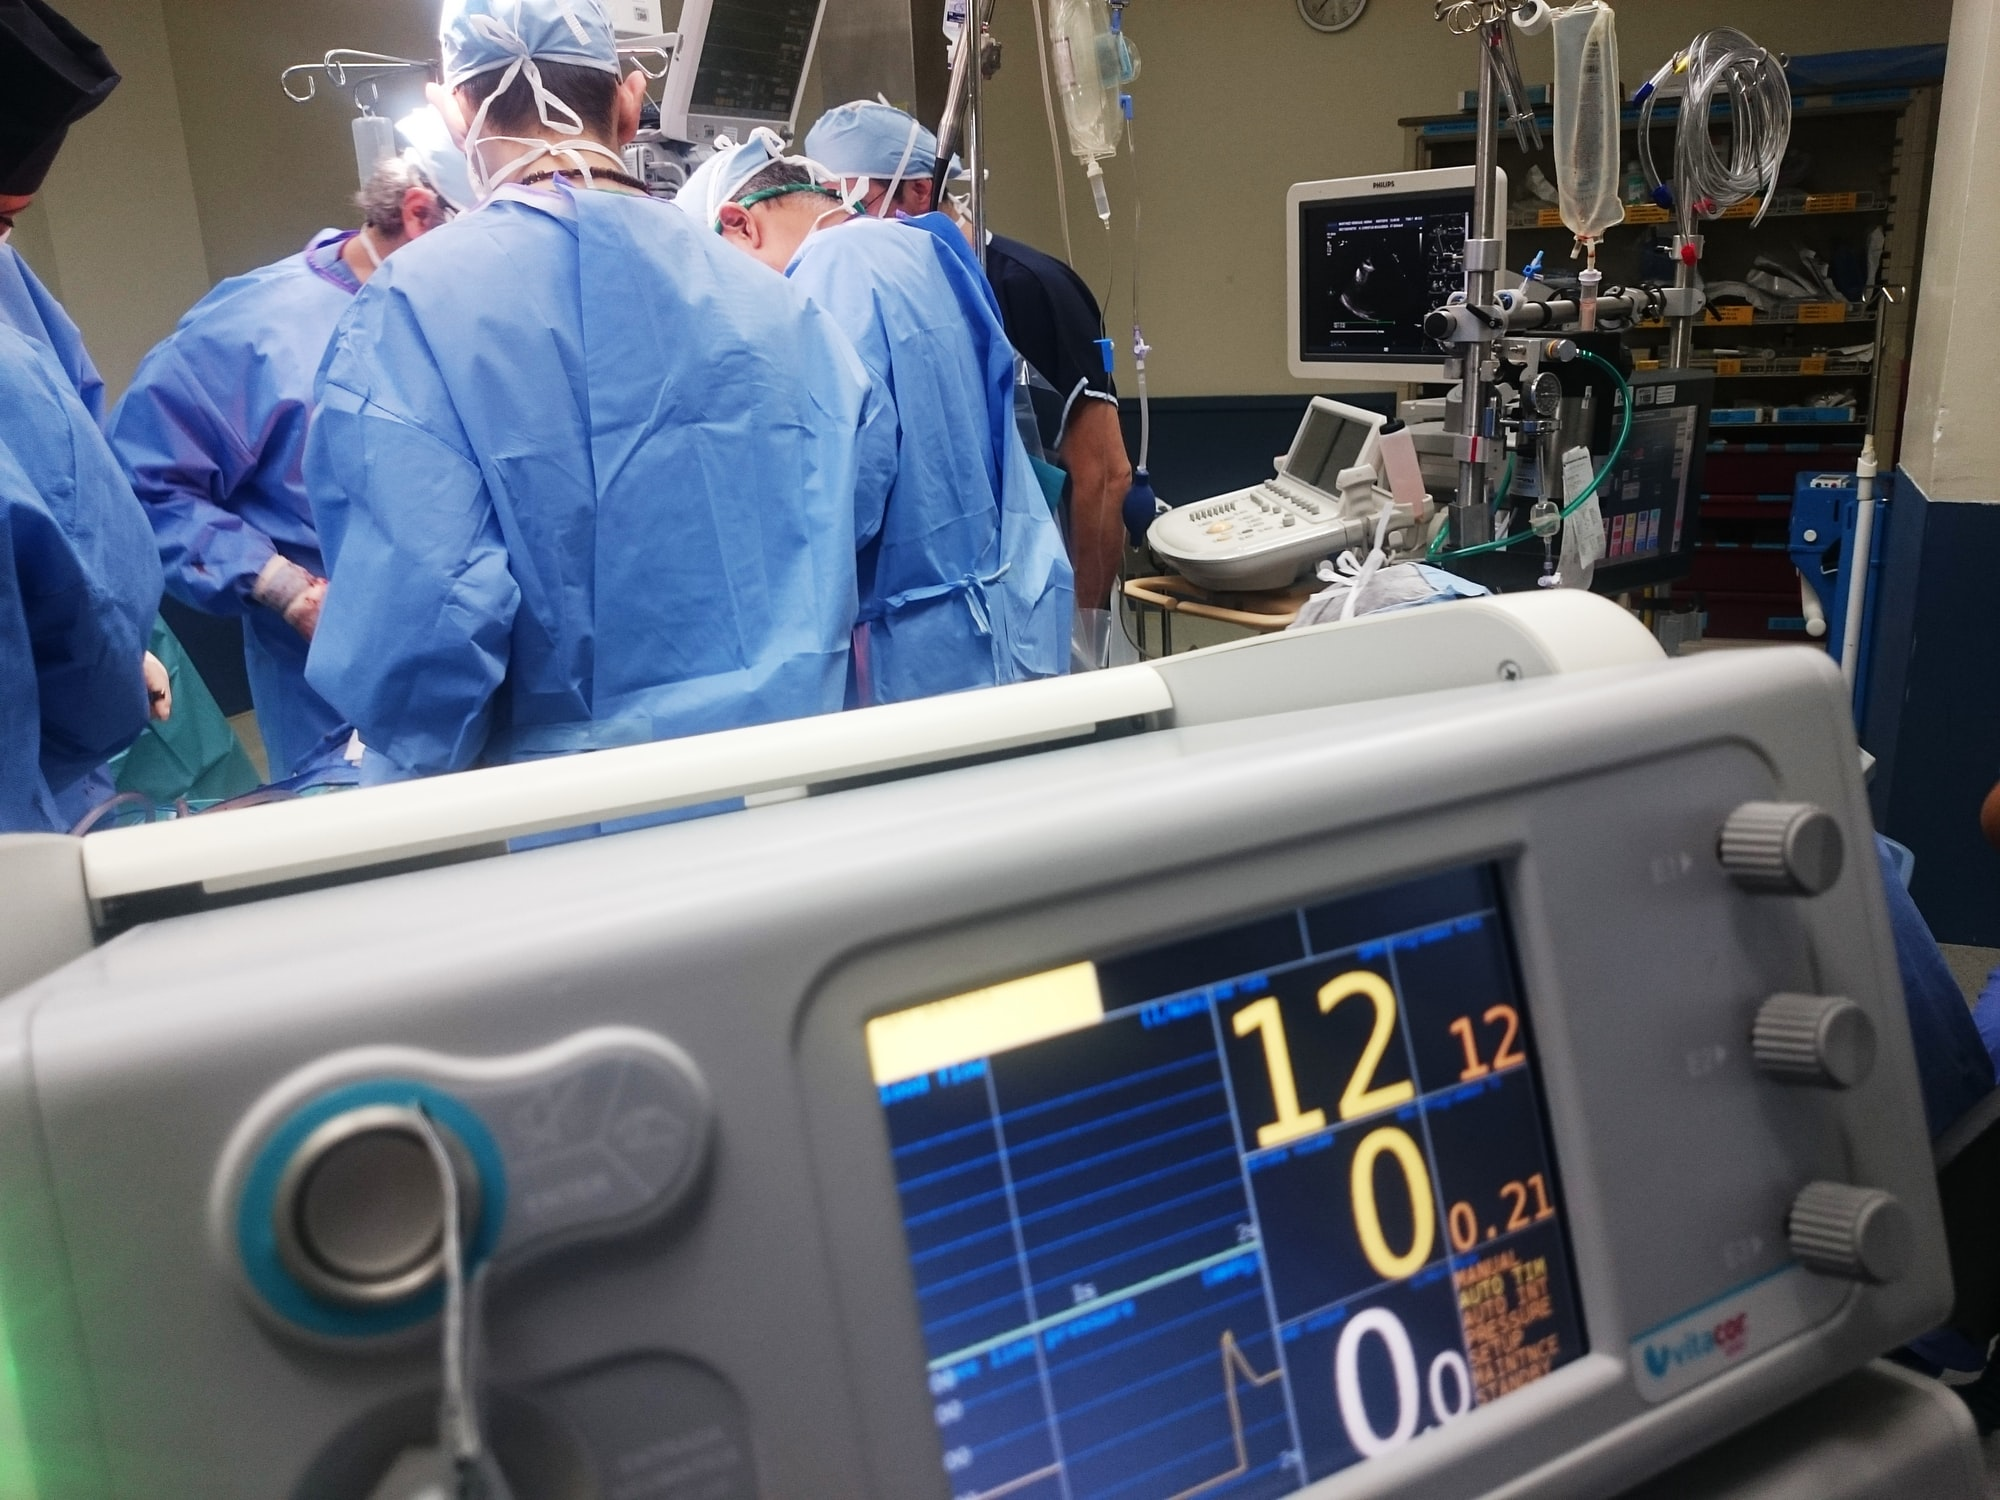 How hospitals are evading price transparency rules